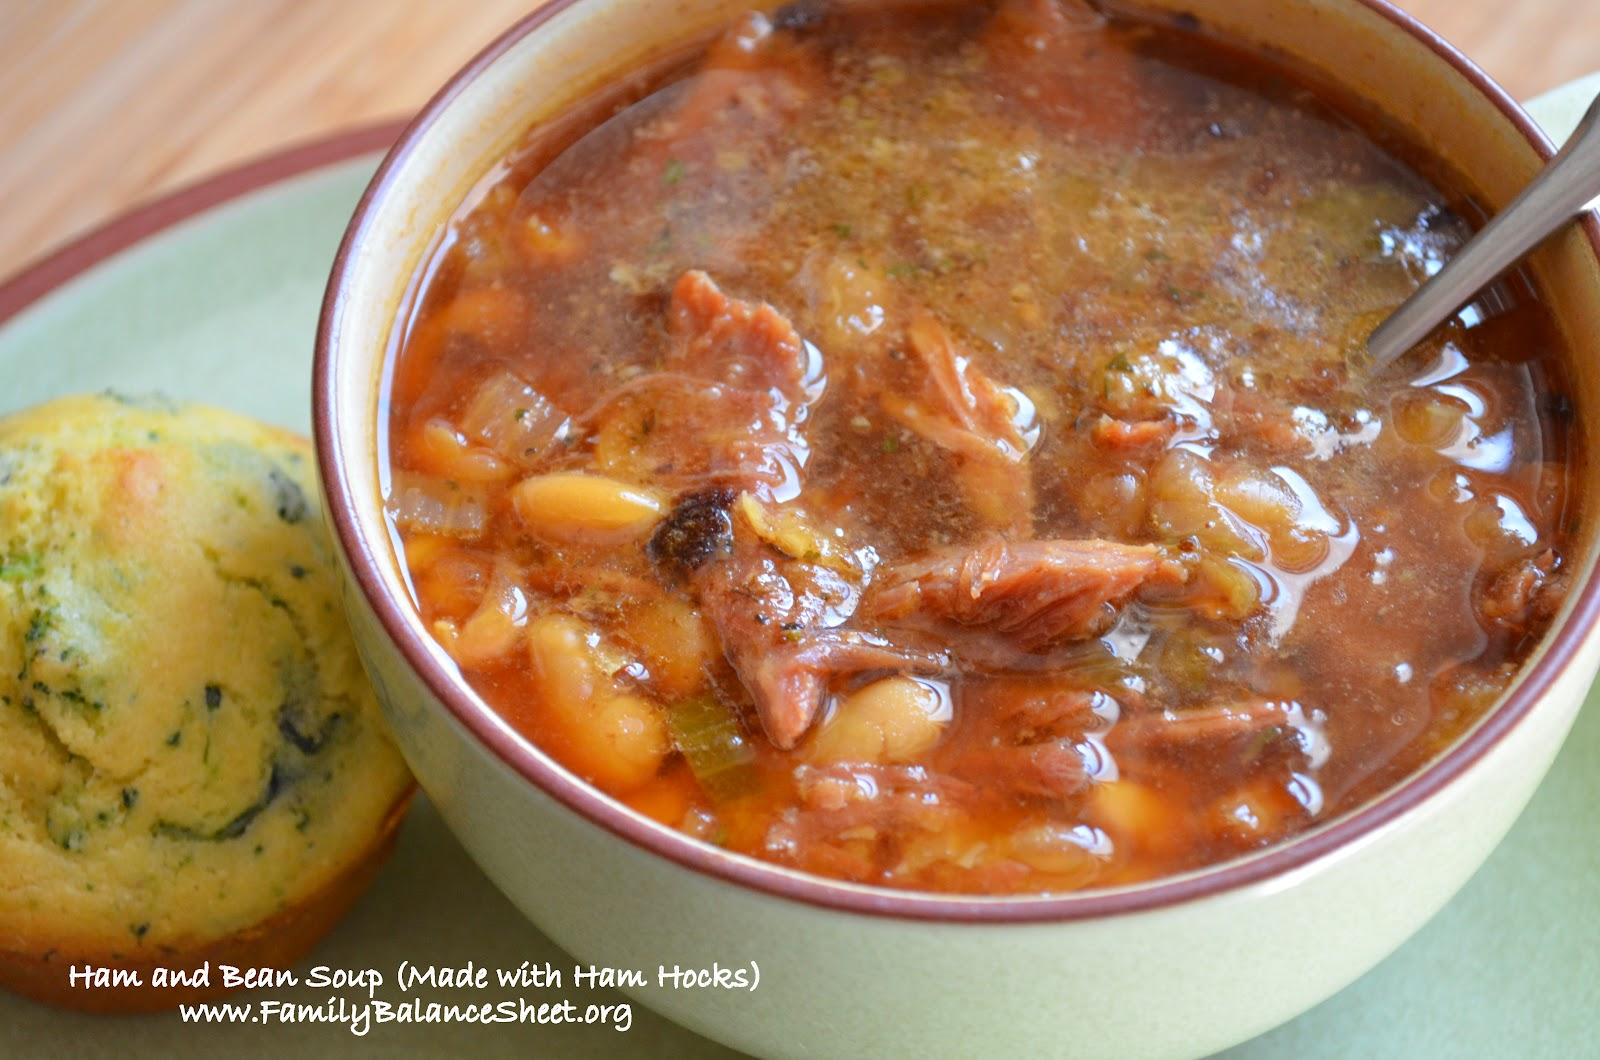 Ham Hock And Bean Soup Food Network